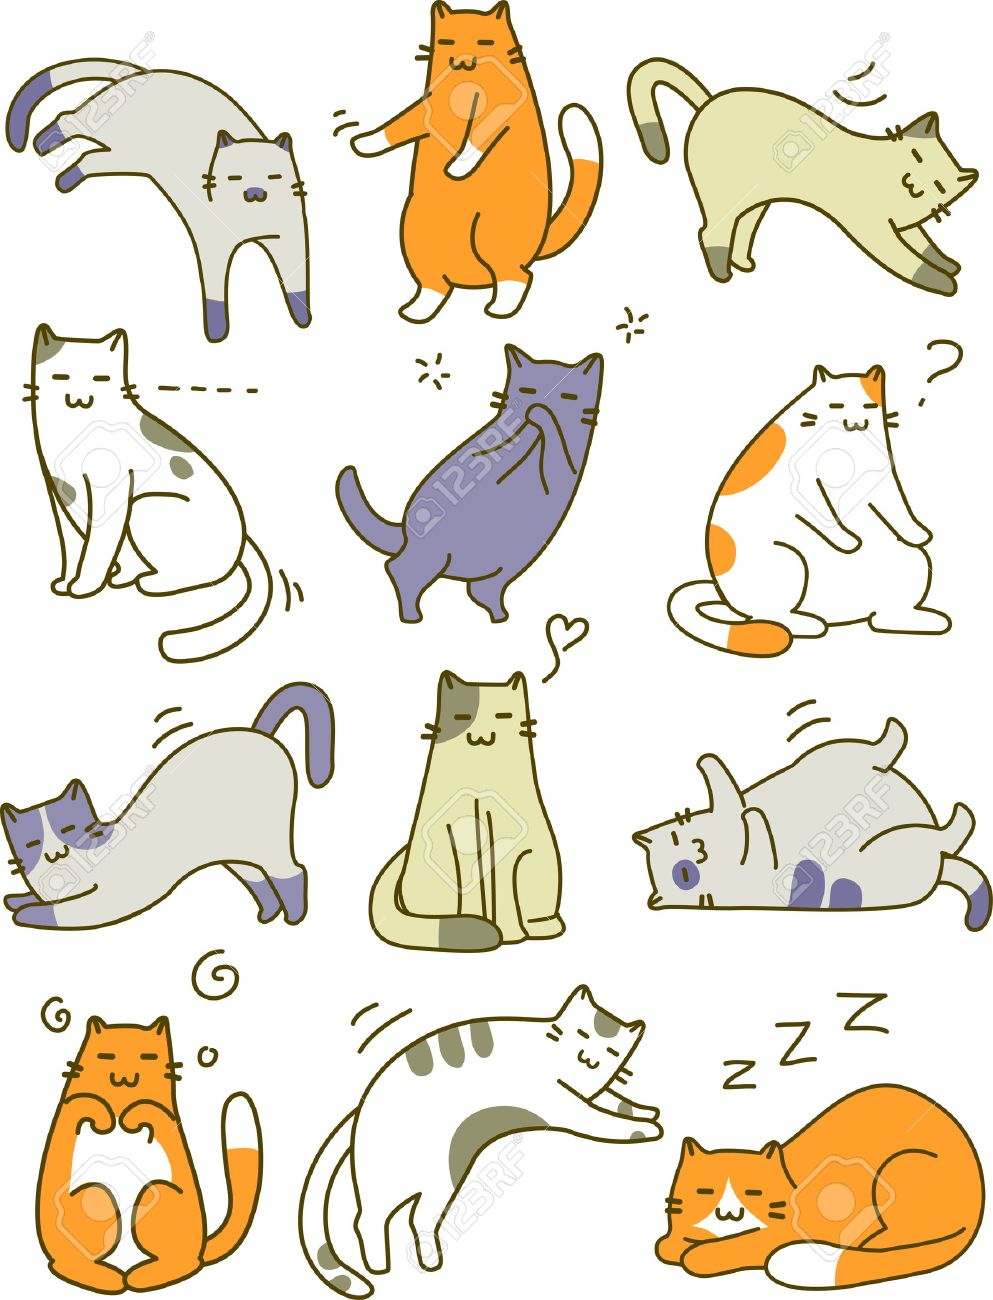 The Cat Poses